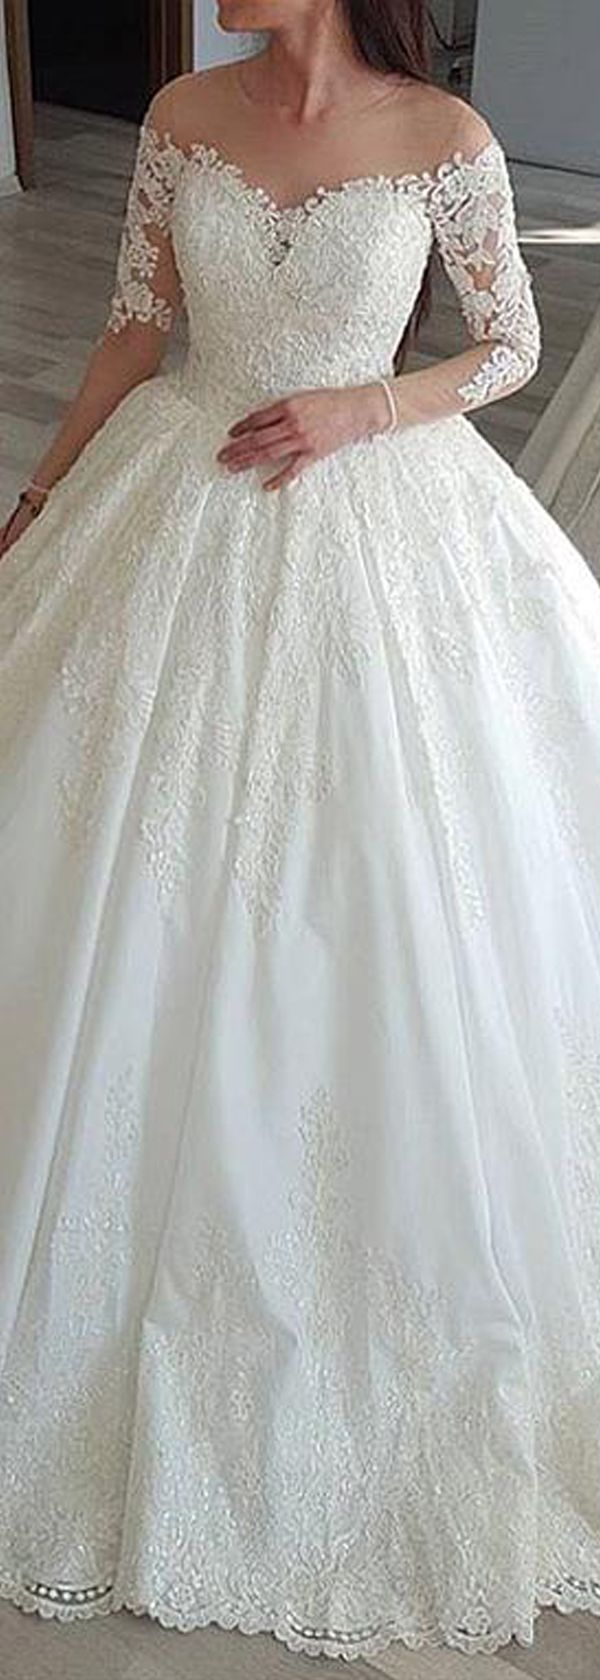 Alluring tulle jewel neckline long sleeves ball gown wedding dress